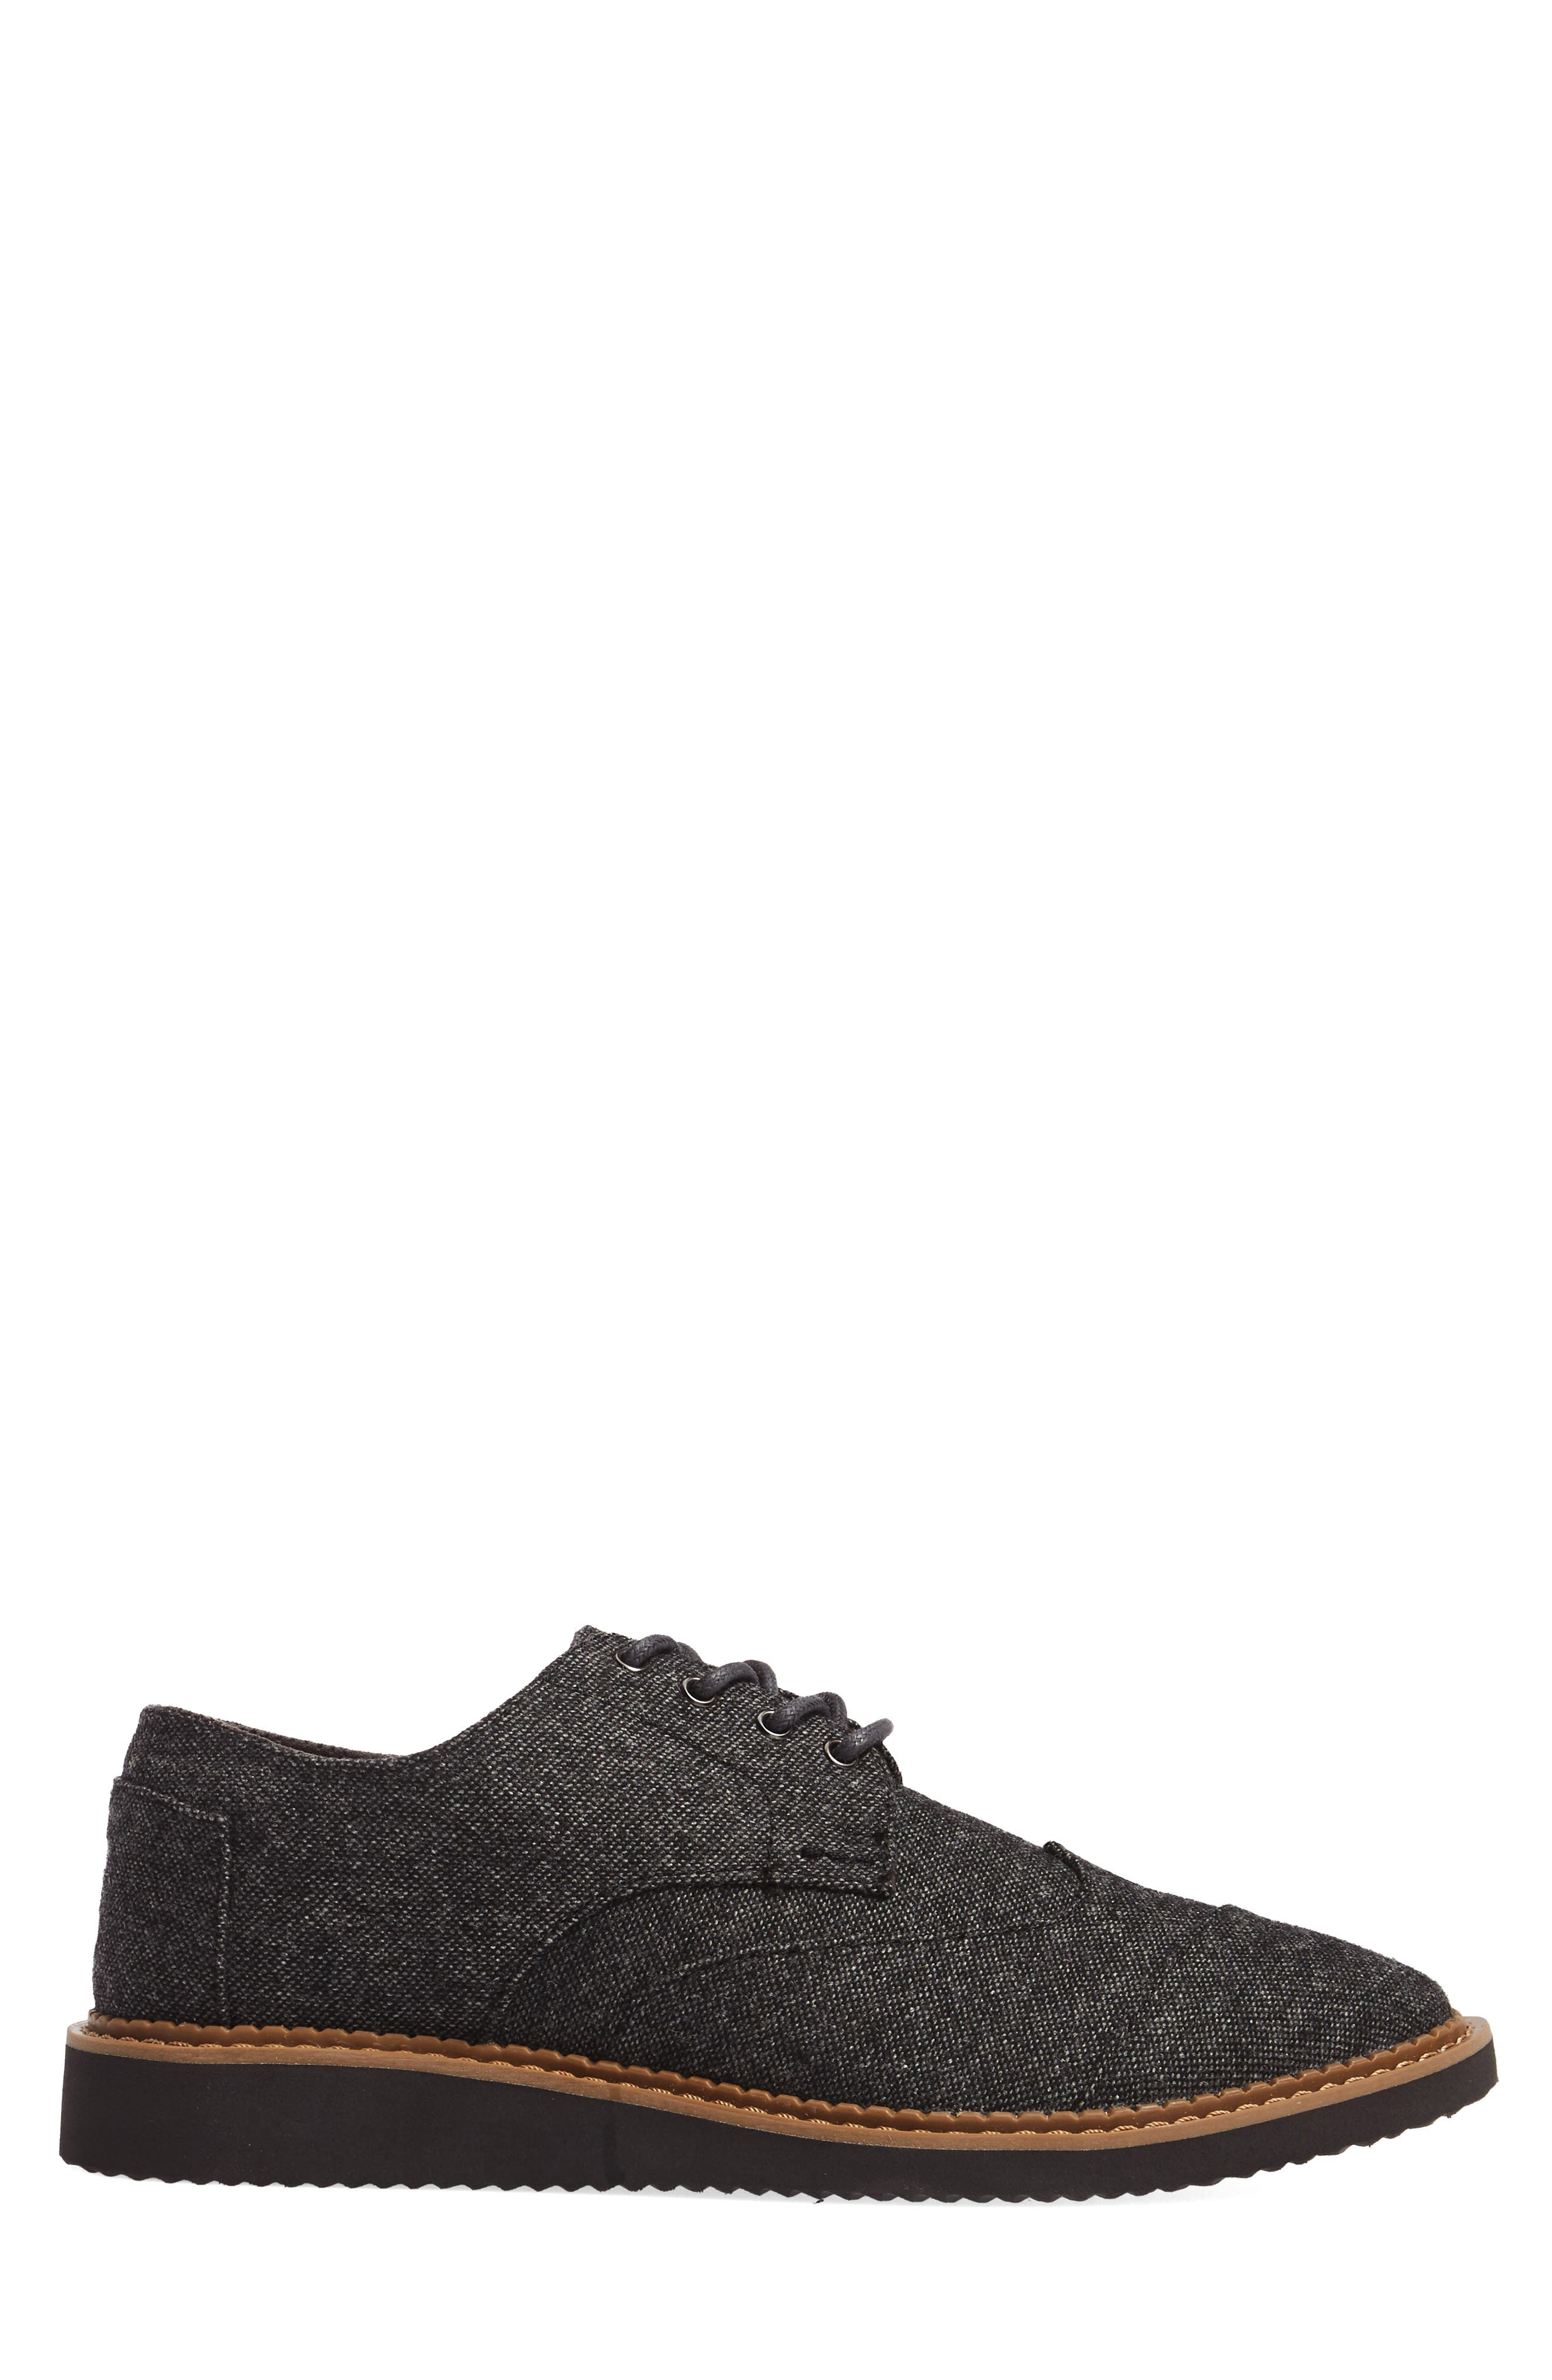 'Classic Brogue' Cotton Twill Derby,                             Alternate thumbnail 38, color,